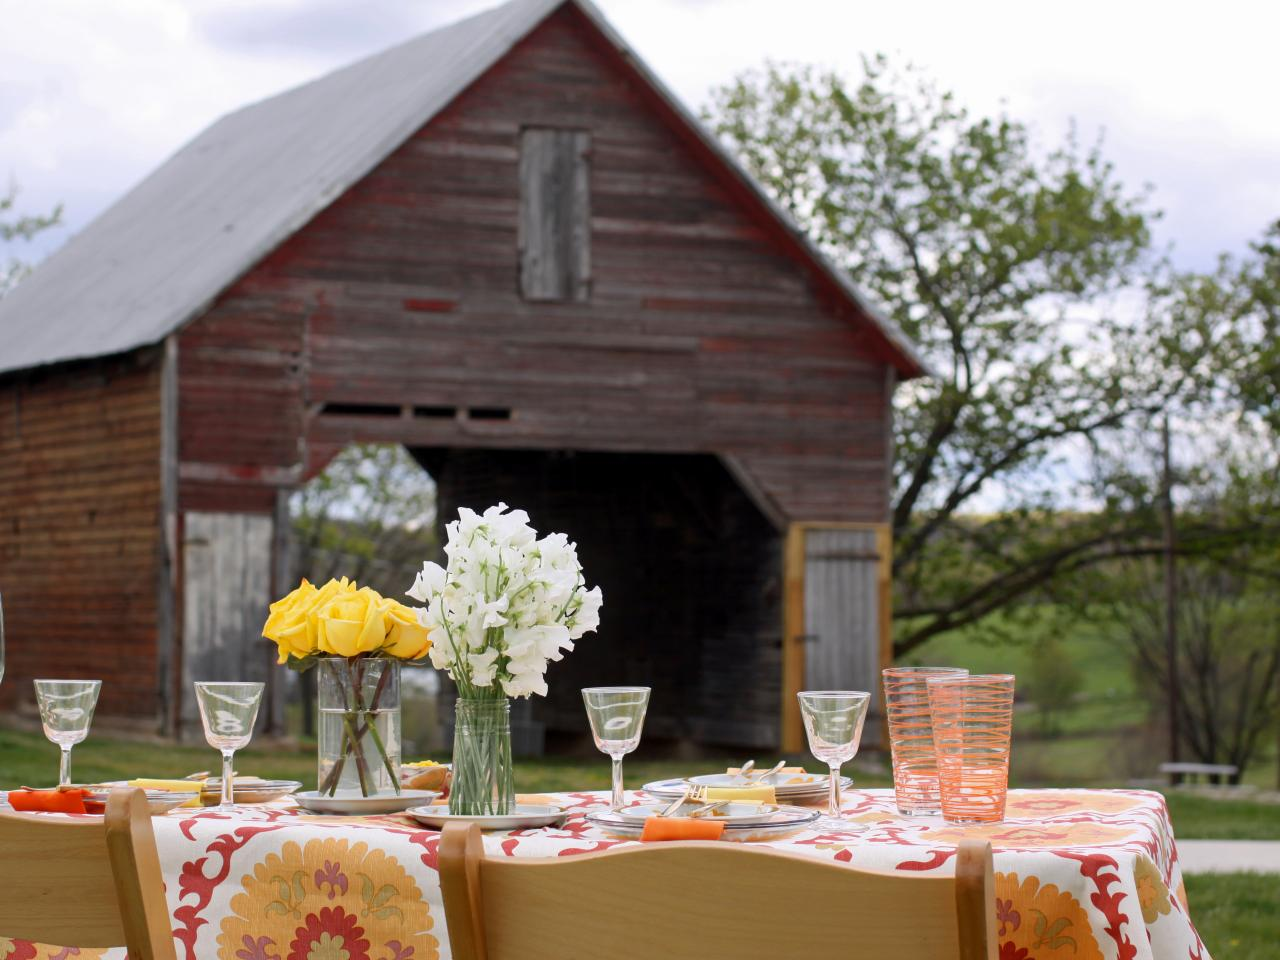 How To Decorate Your Outdoor Wedding: COOL IDEAS FOR SUMMER STYLE HOME DECOR